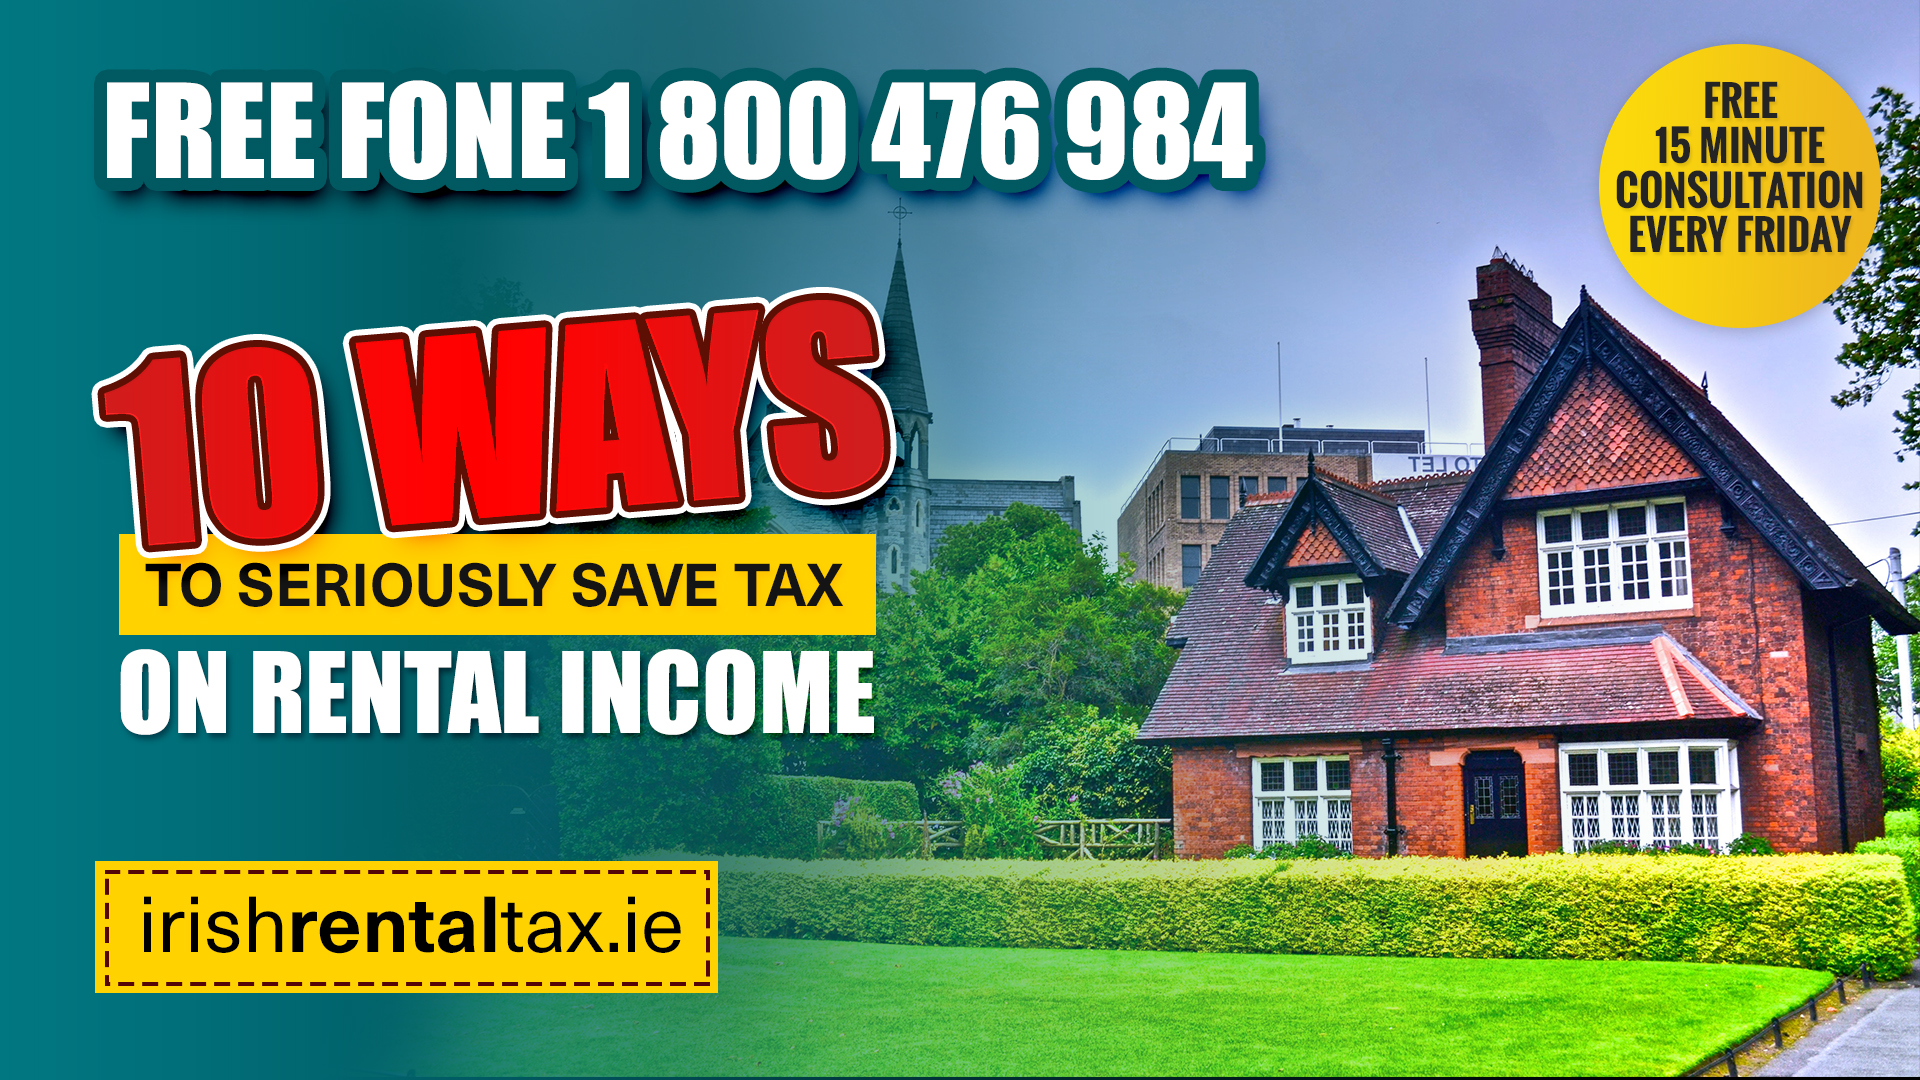 Reduce Your Tax on Air BNB : irishrentaltax.ie